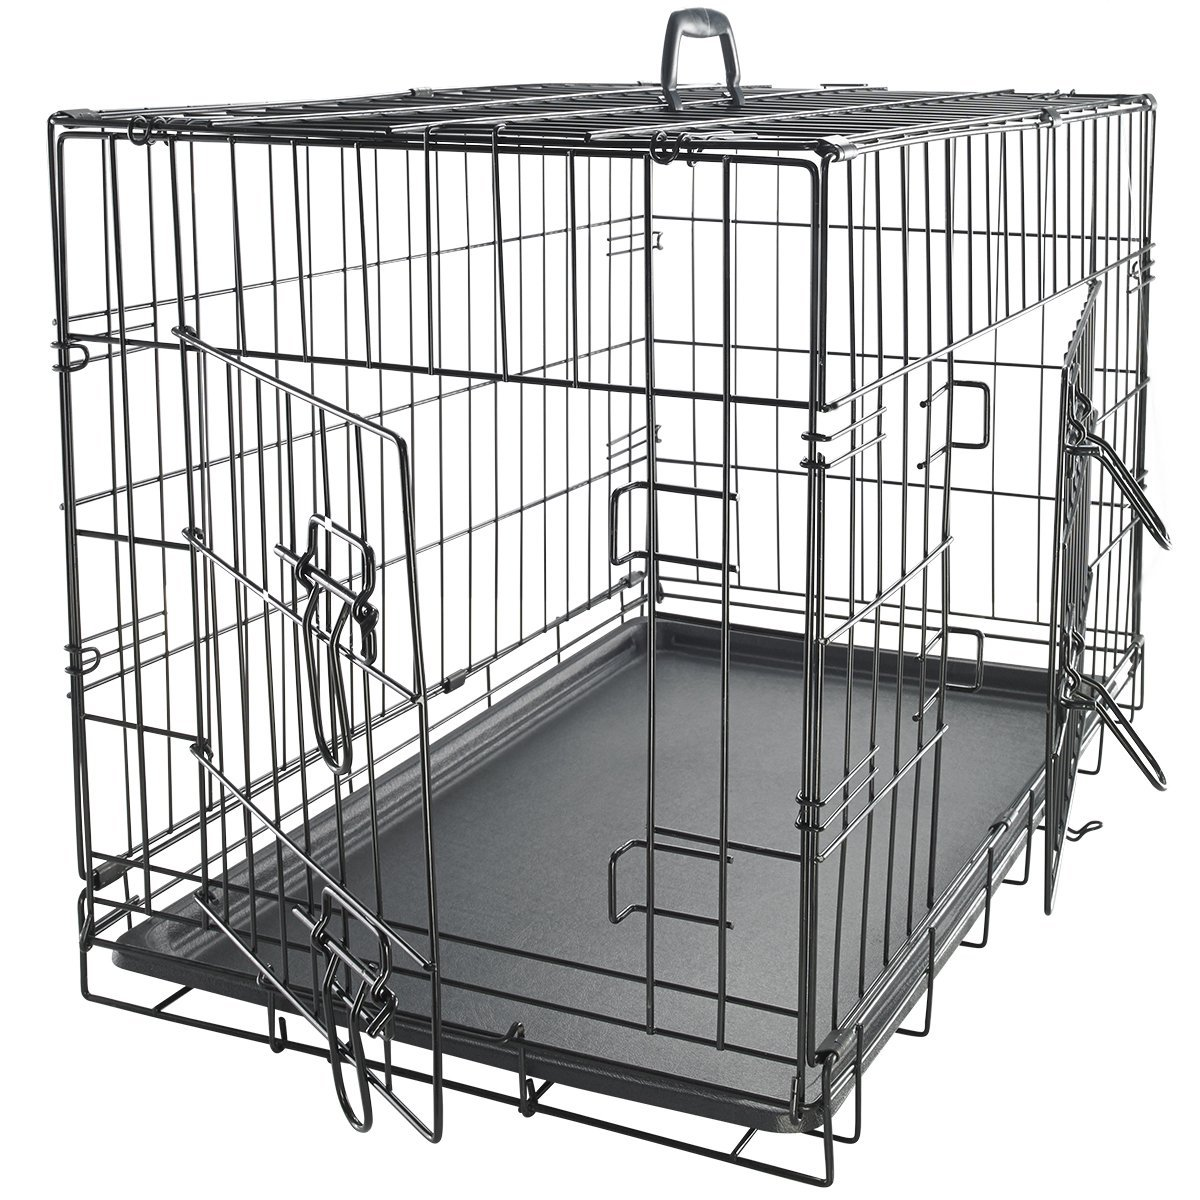 OxGord Double-Door Easy Folding Metal Pet Crate, 100% Washable, Space Saving Design